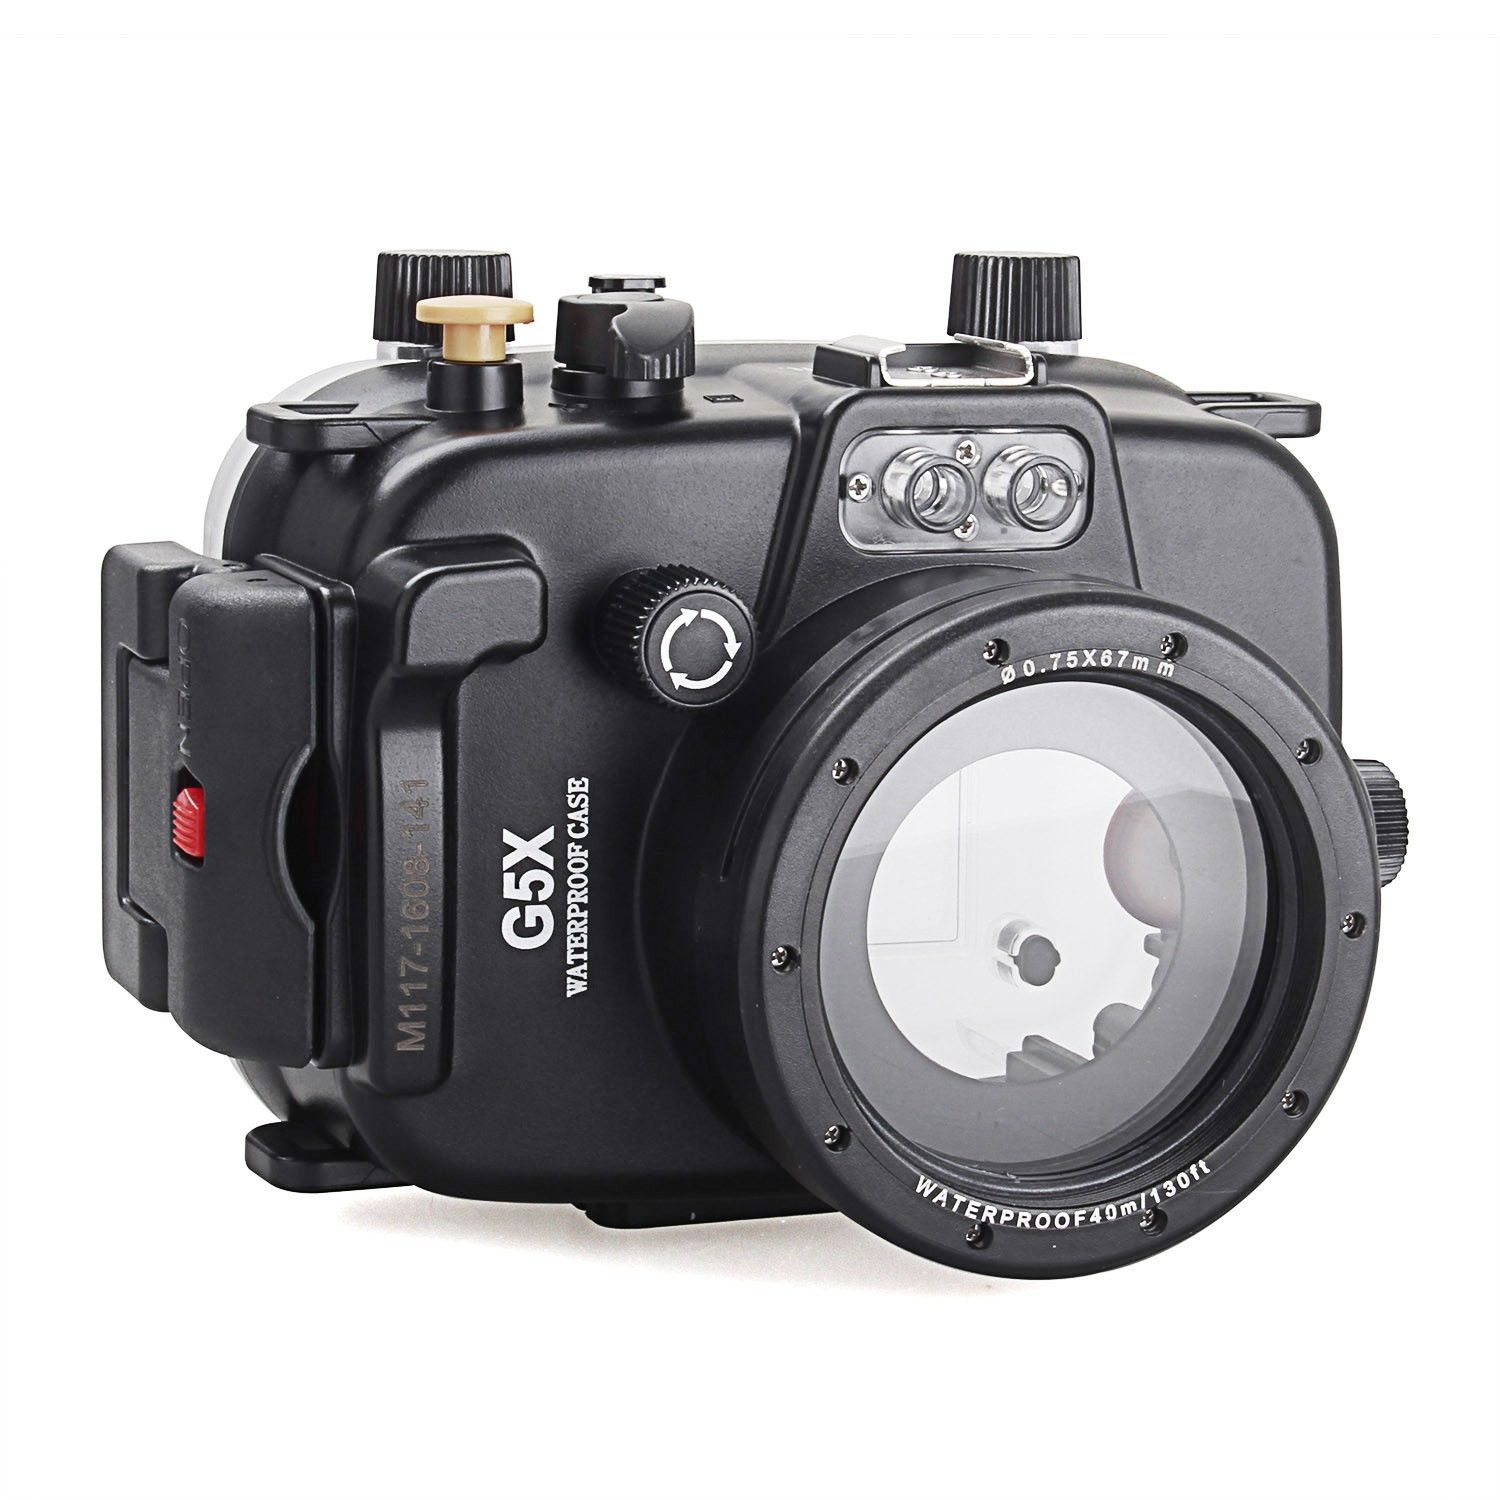 Waterproof Underwater Housing diving Camera Housing Case for canon PowerShot G5X Lens meikon 40m waterproof underwater camera housing case bag for canon 600d t3i